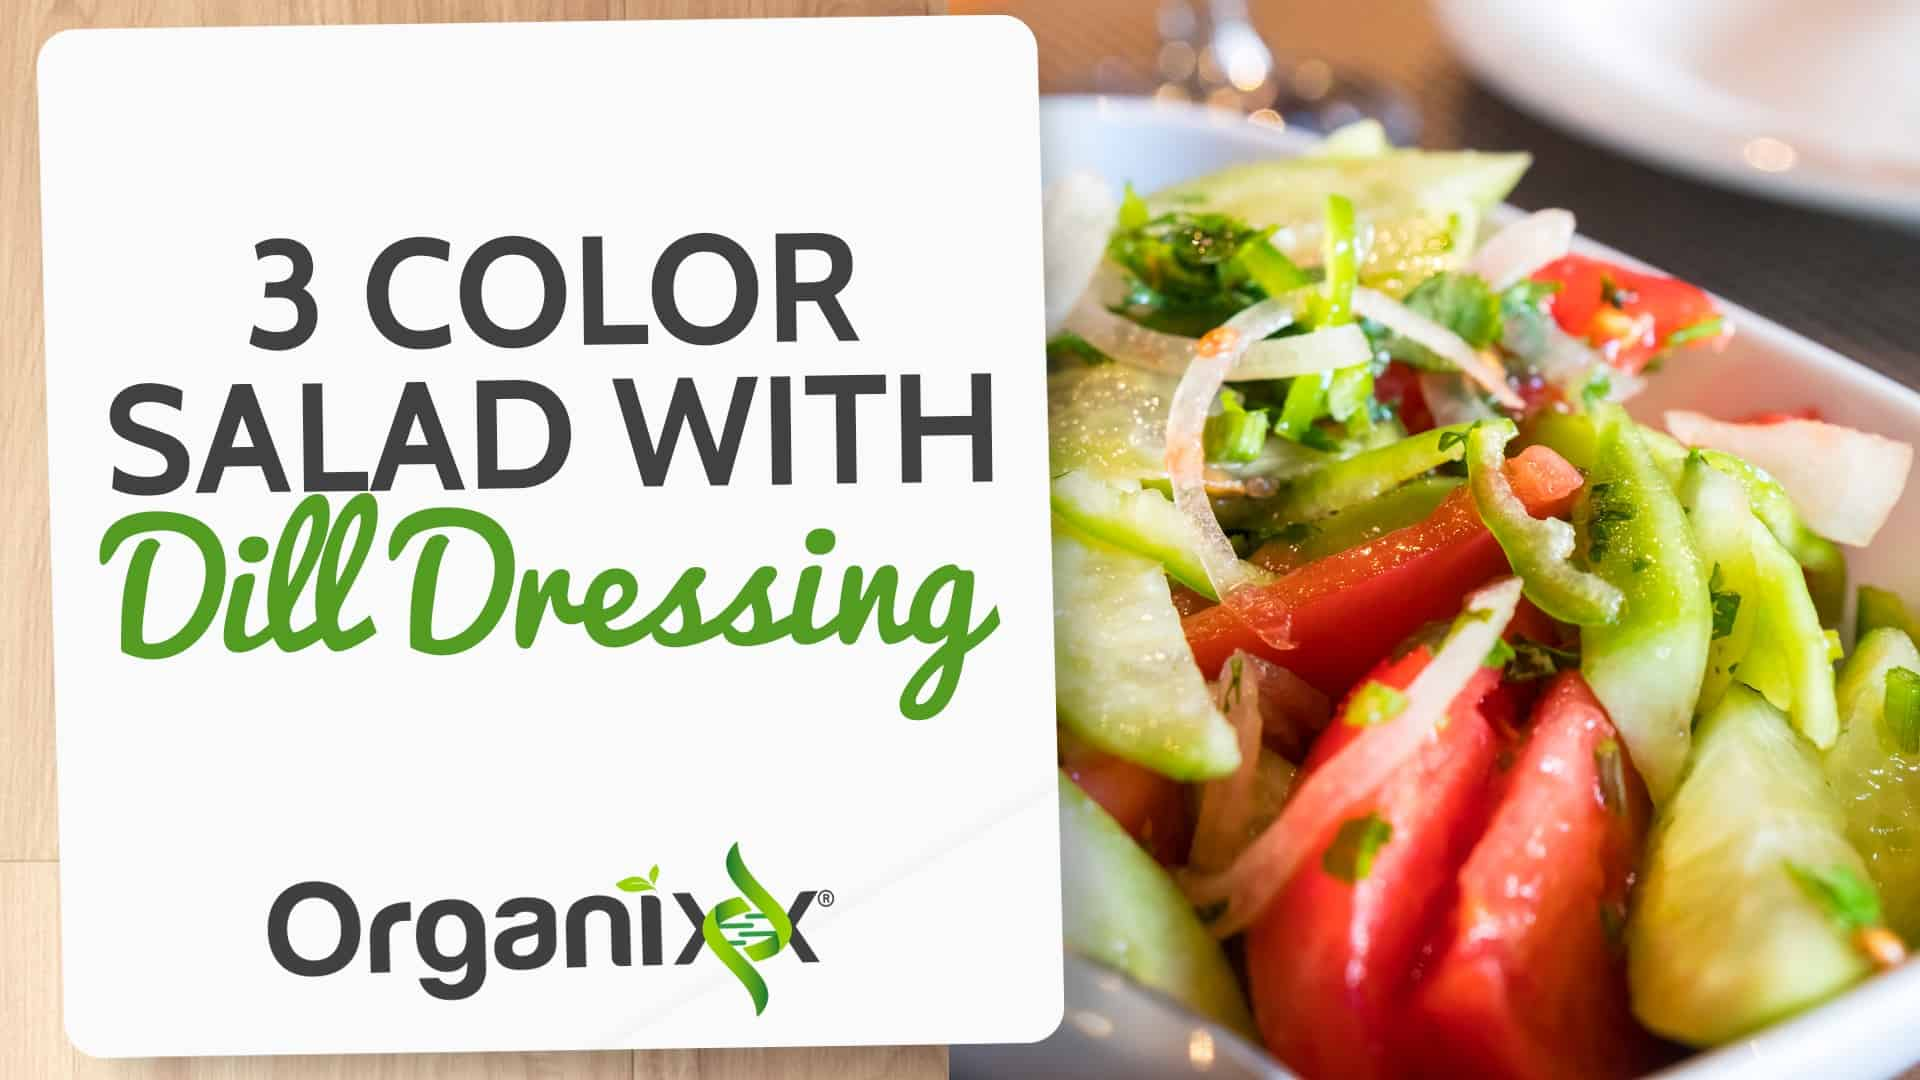 3-Color Salad with Dill Dressing Just in Time for Summer